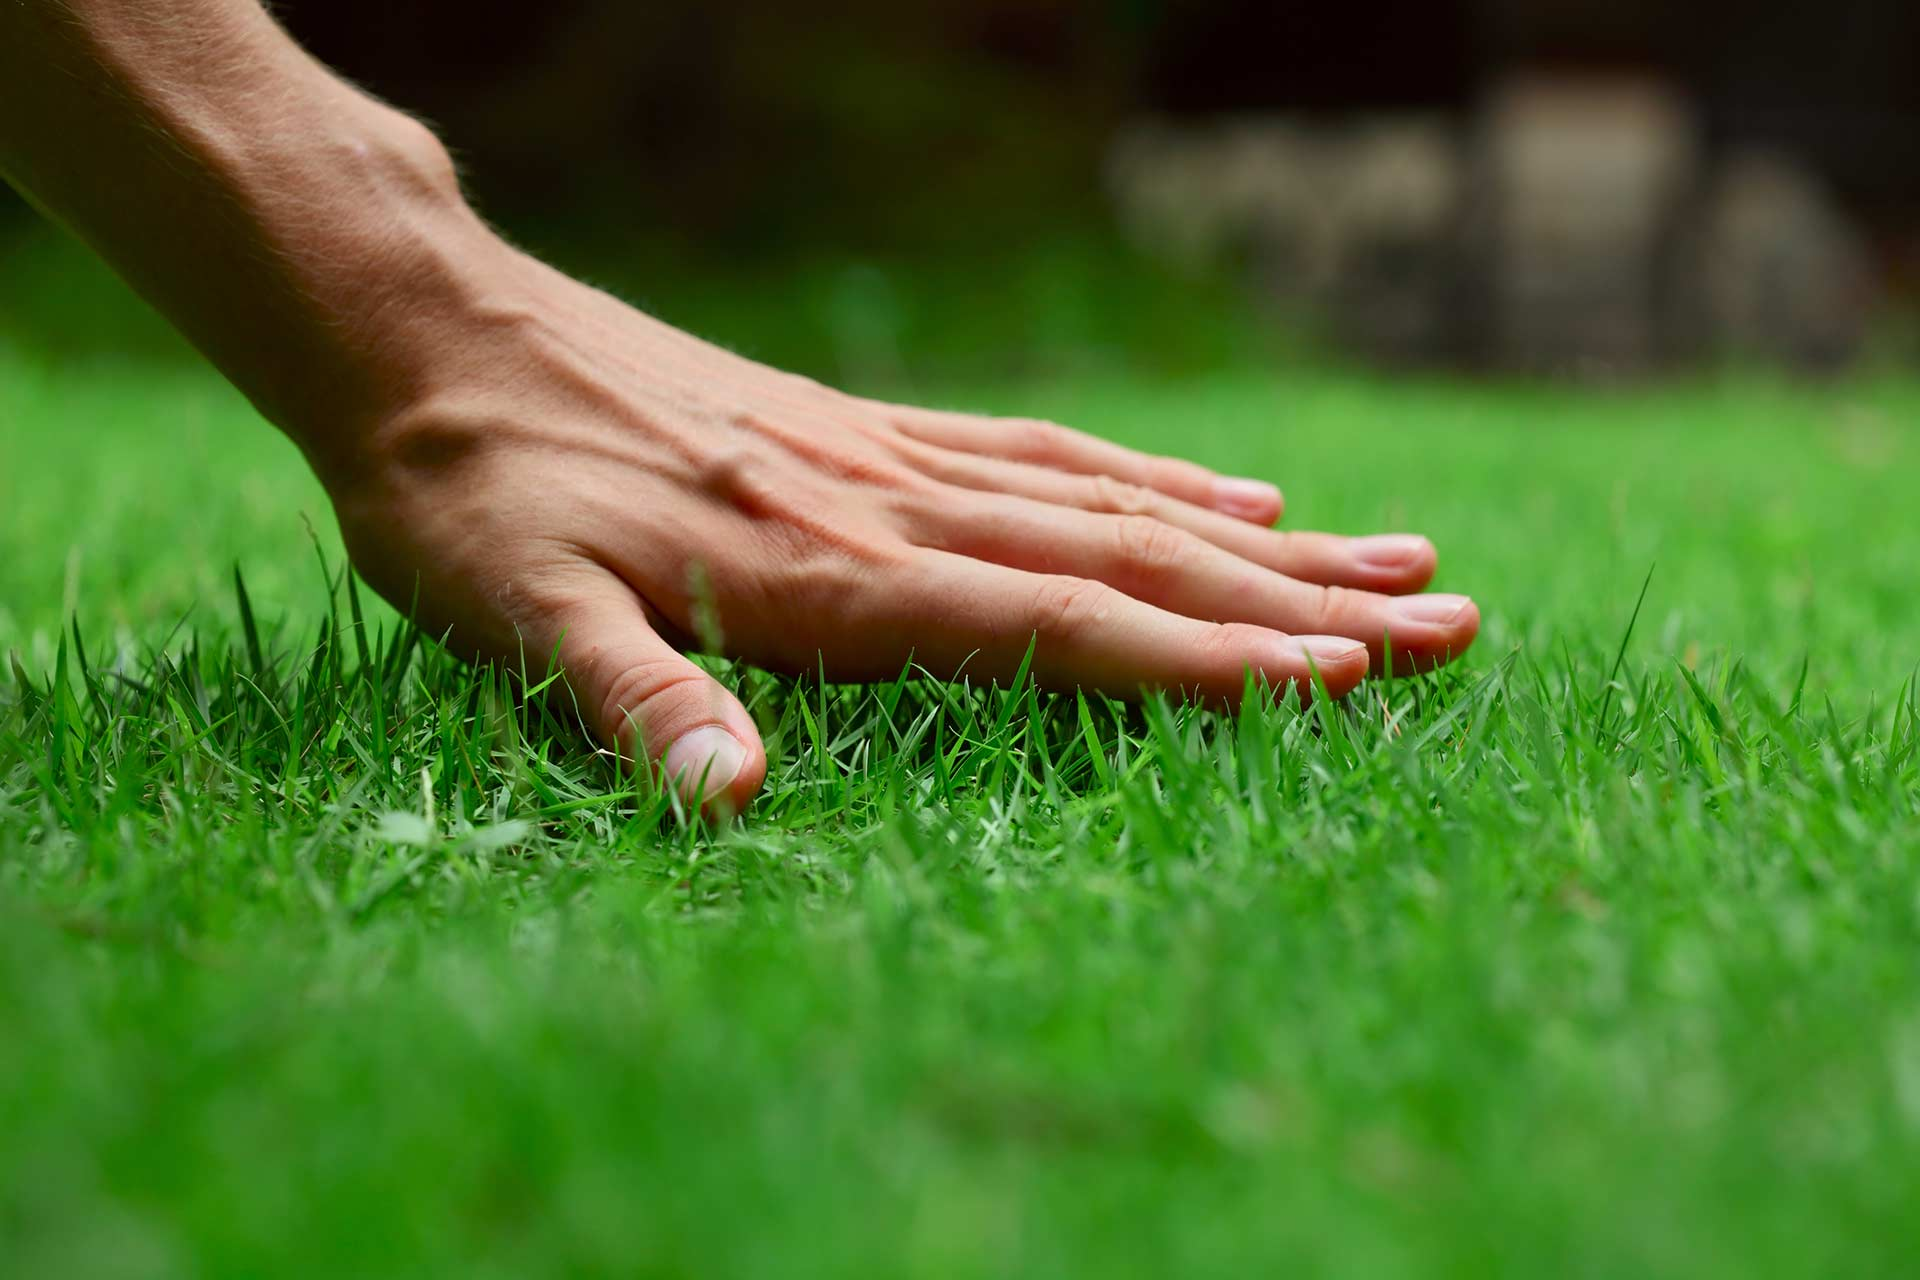 A hand on healthy green grass